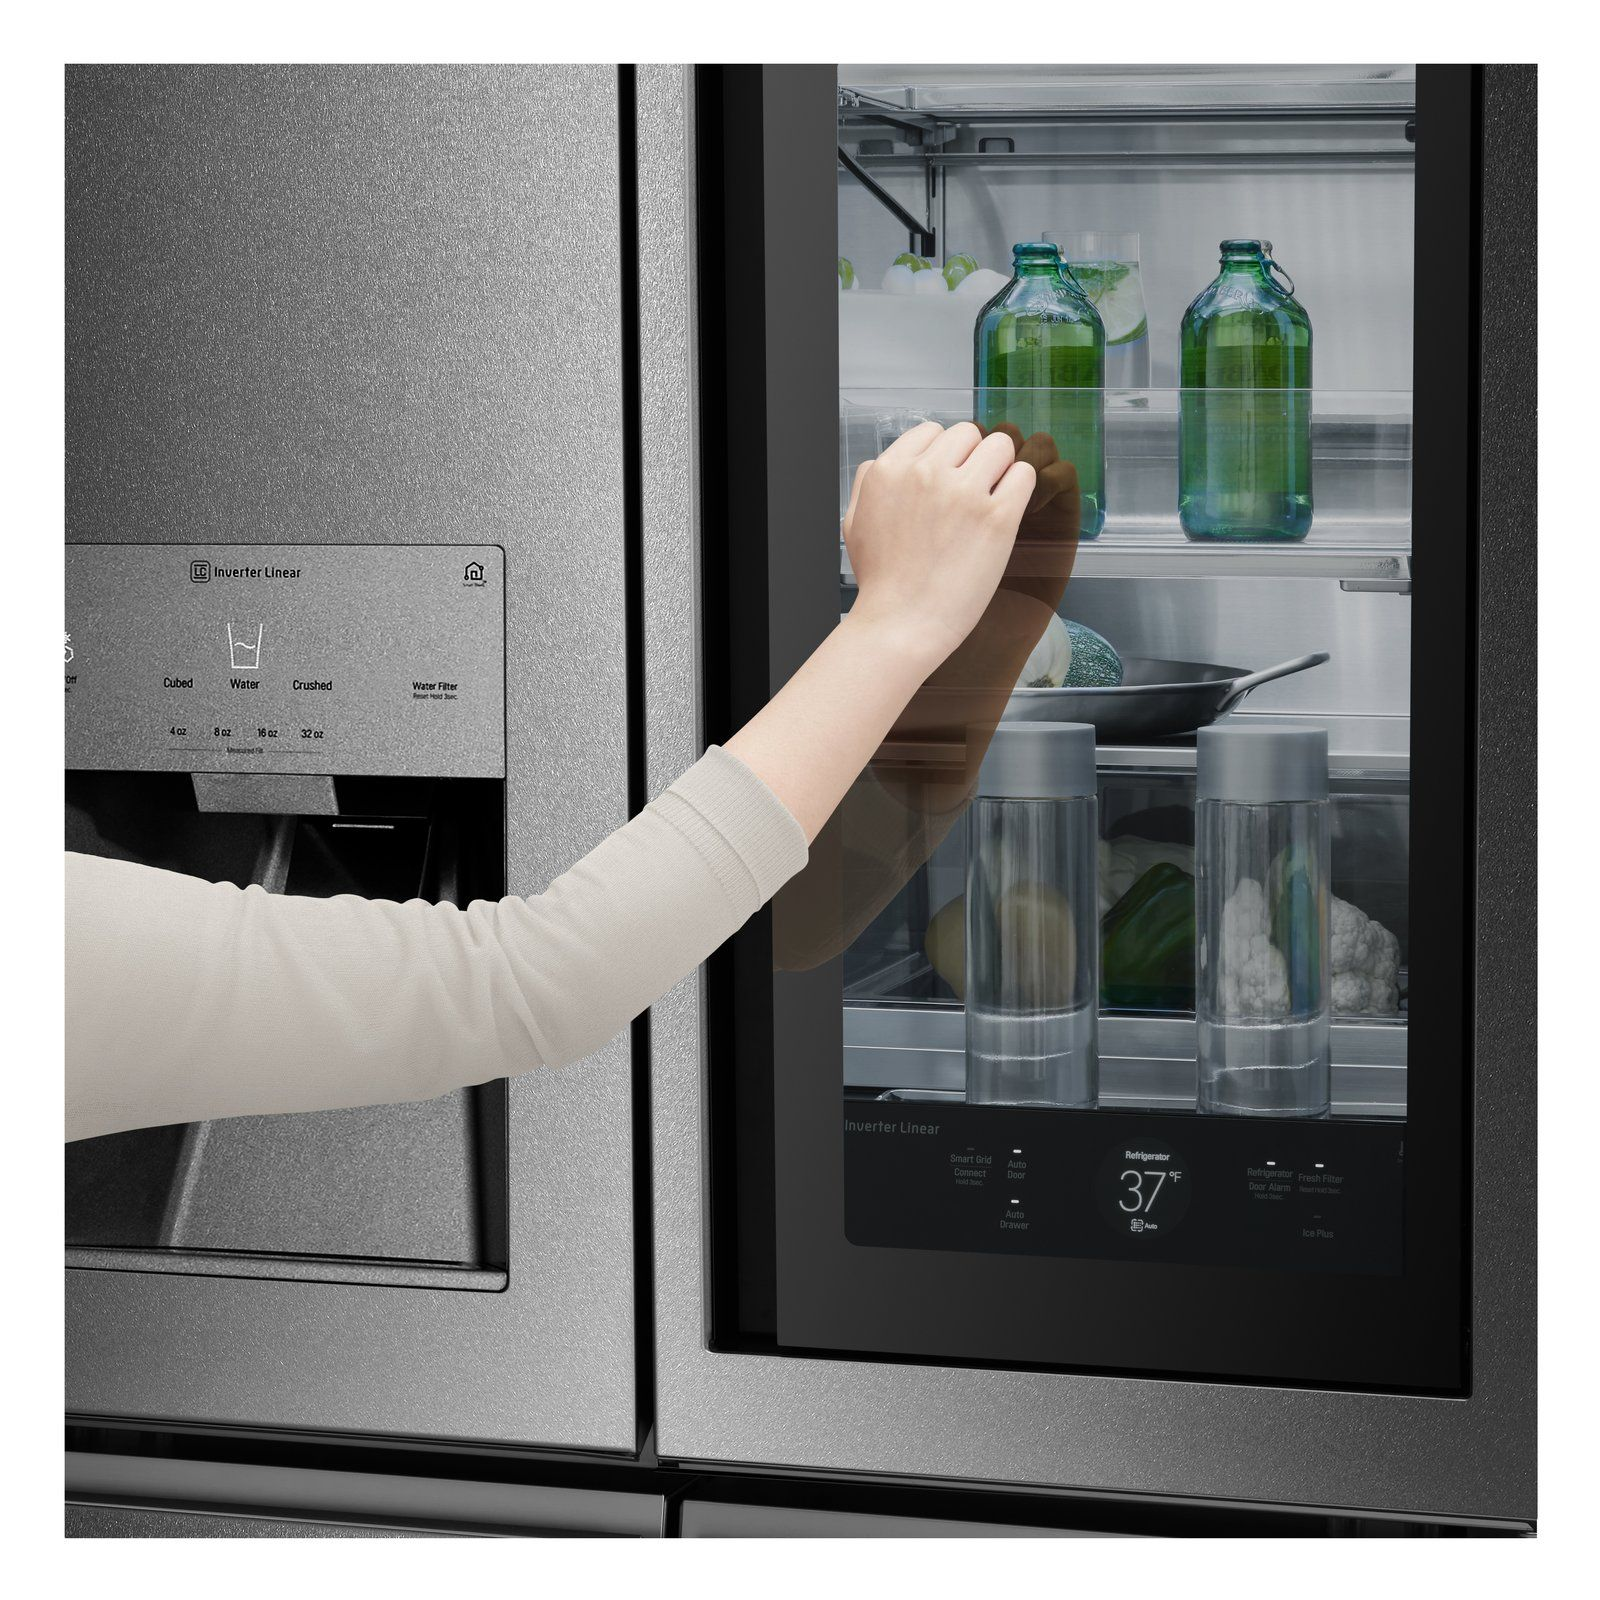 Lg Signature Kitchen And Laundry Smart Home Appliances Refrigerator Models Counter Depth Refrigerator Energy Rating